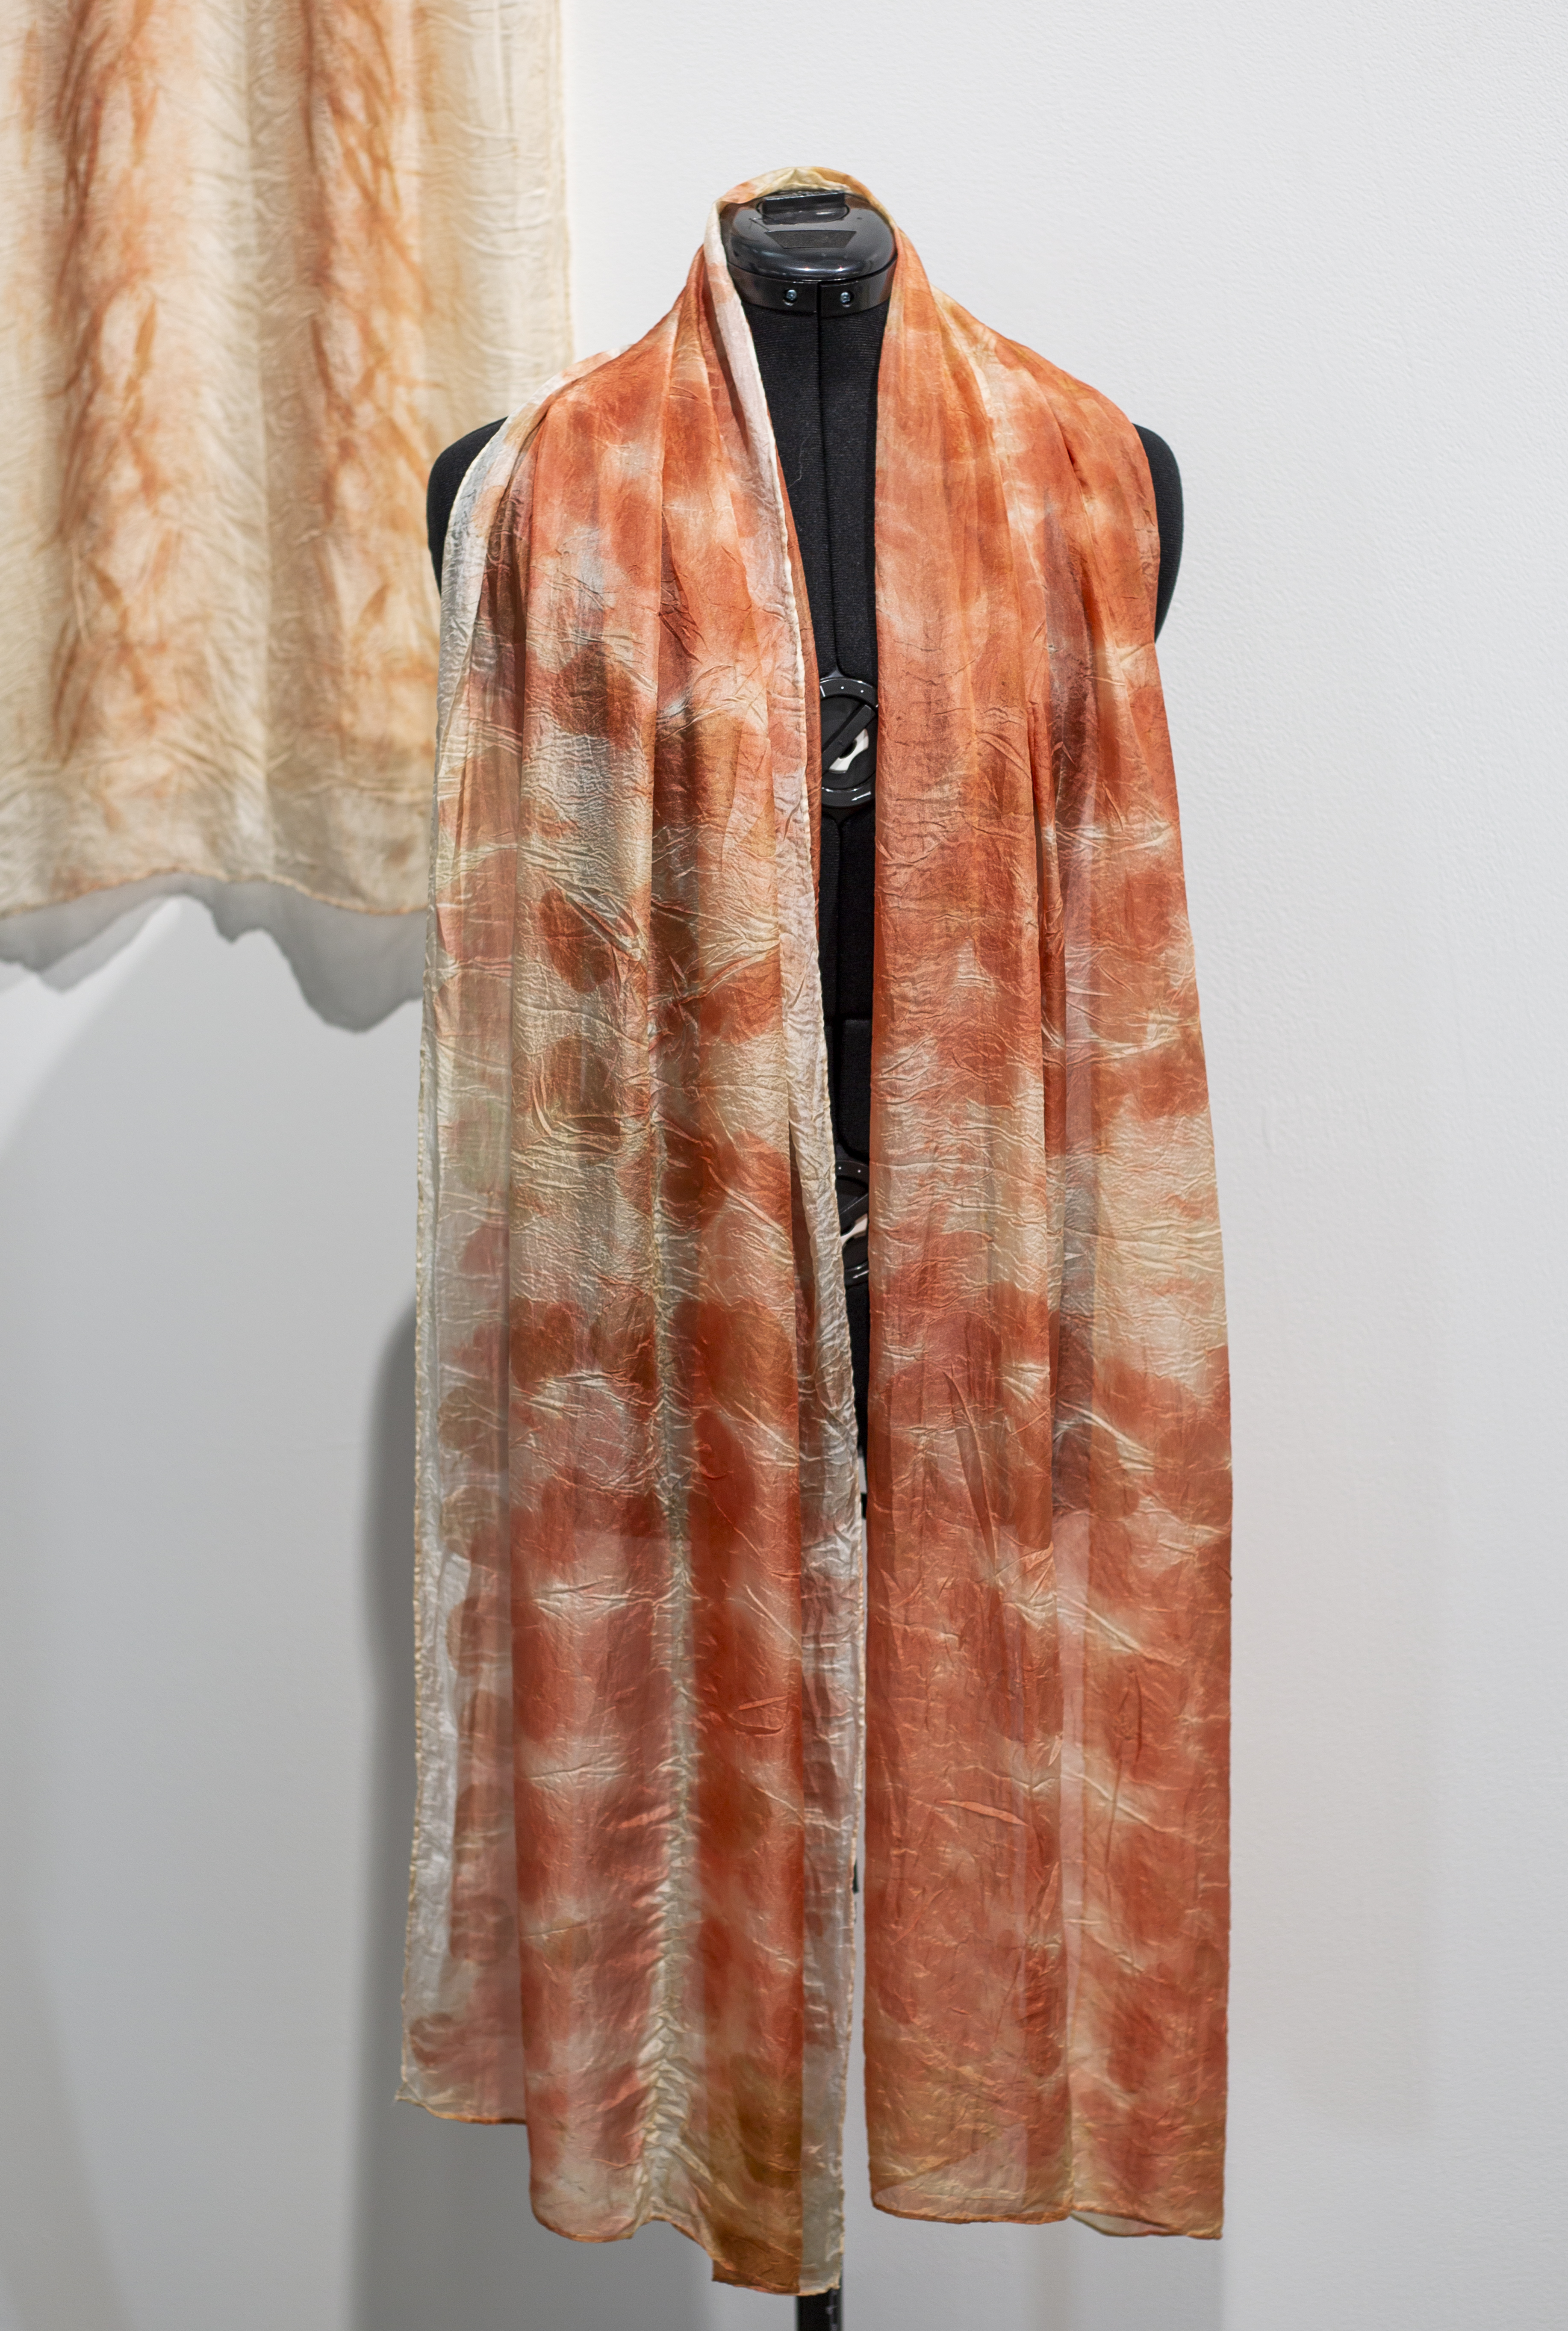 Silk Scarf #2 by Mary Graham